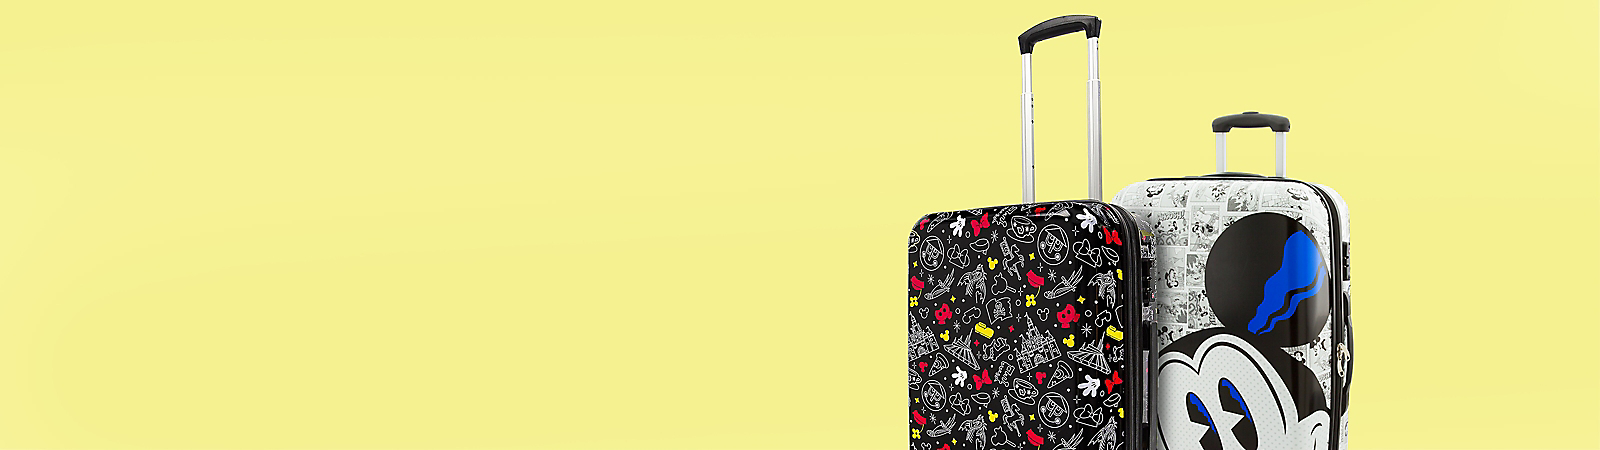 Background image of Women's Luggage & Travel